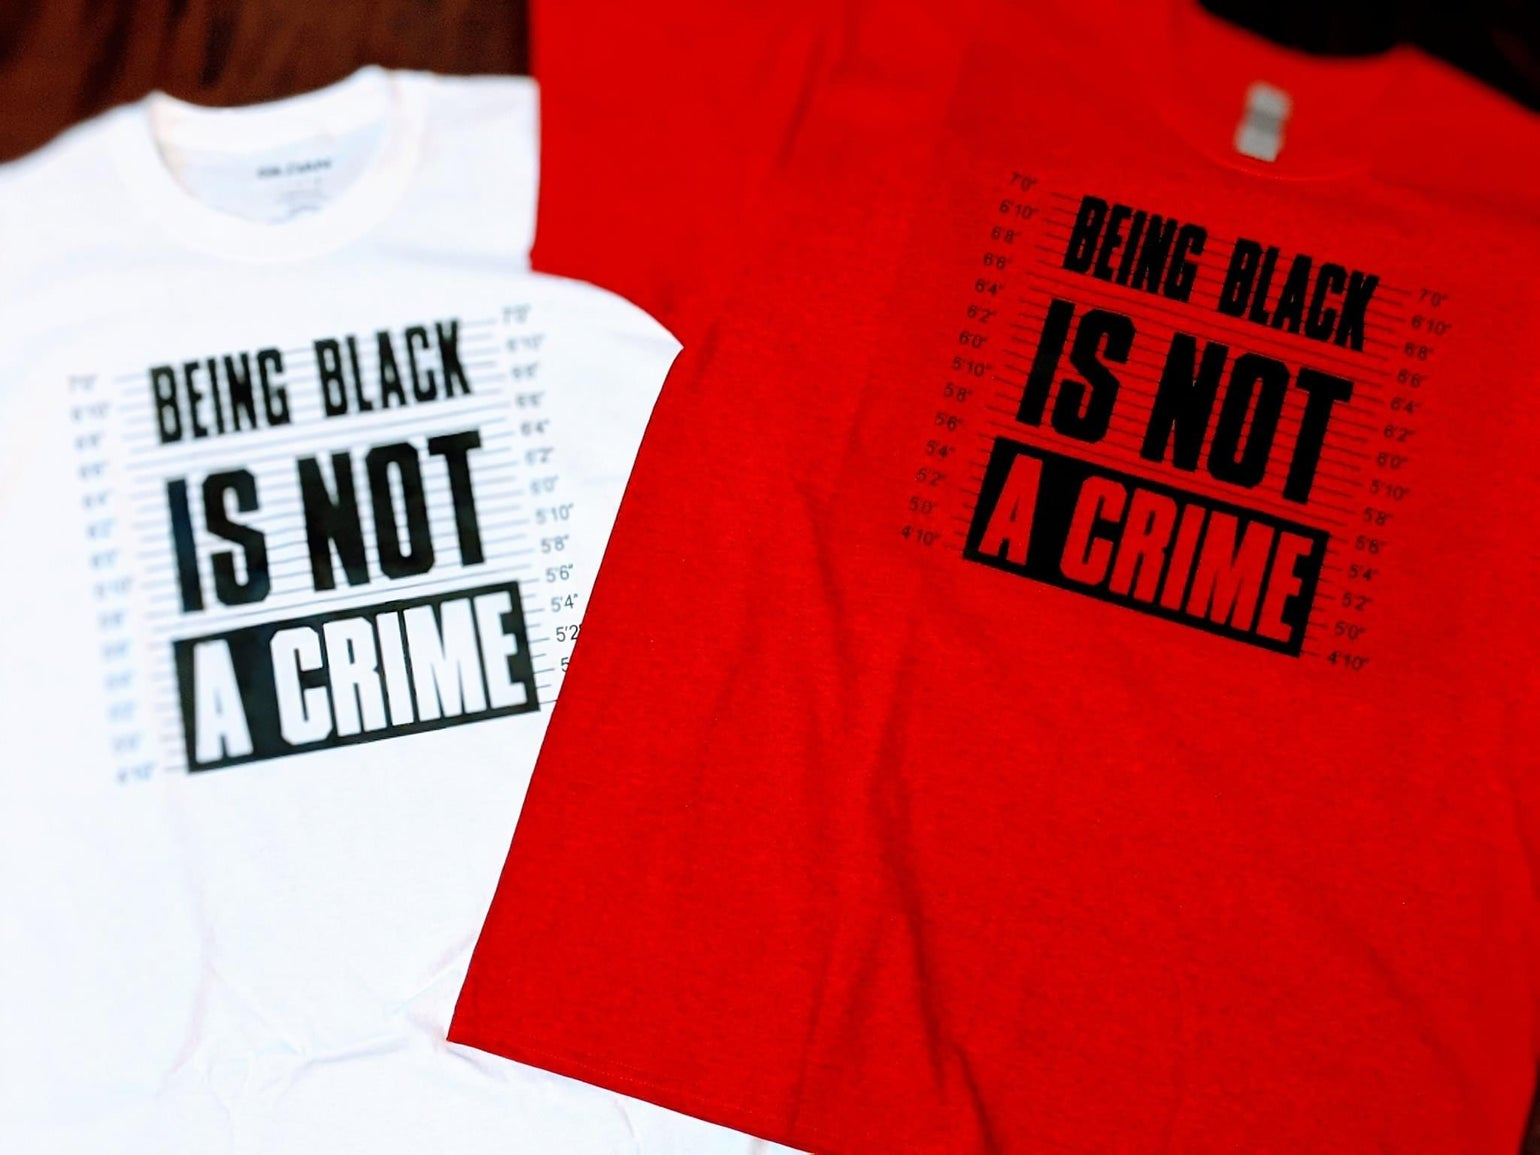 Image of Black: Not Guilty